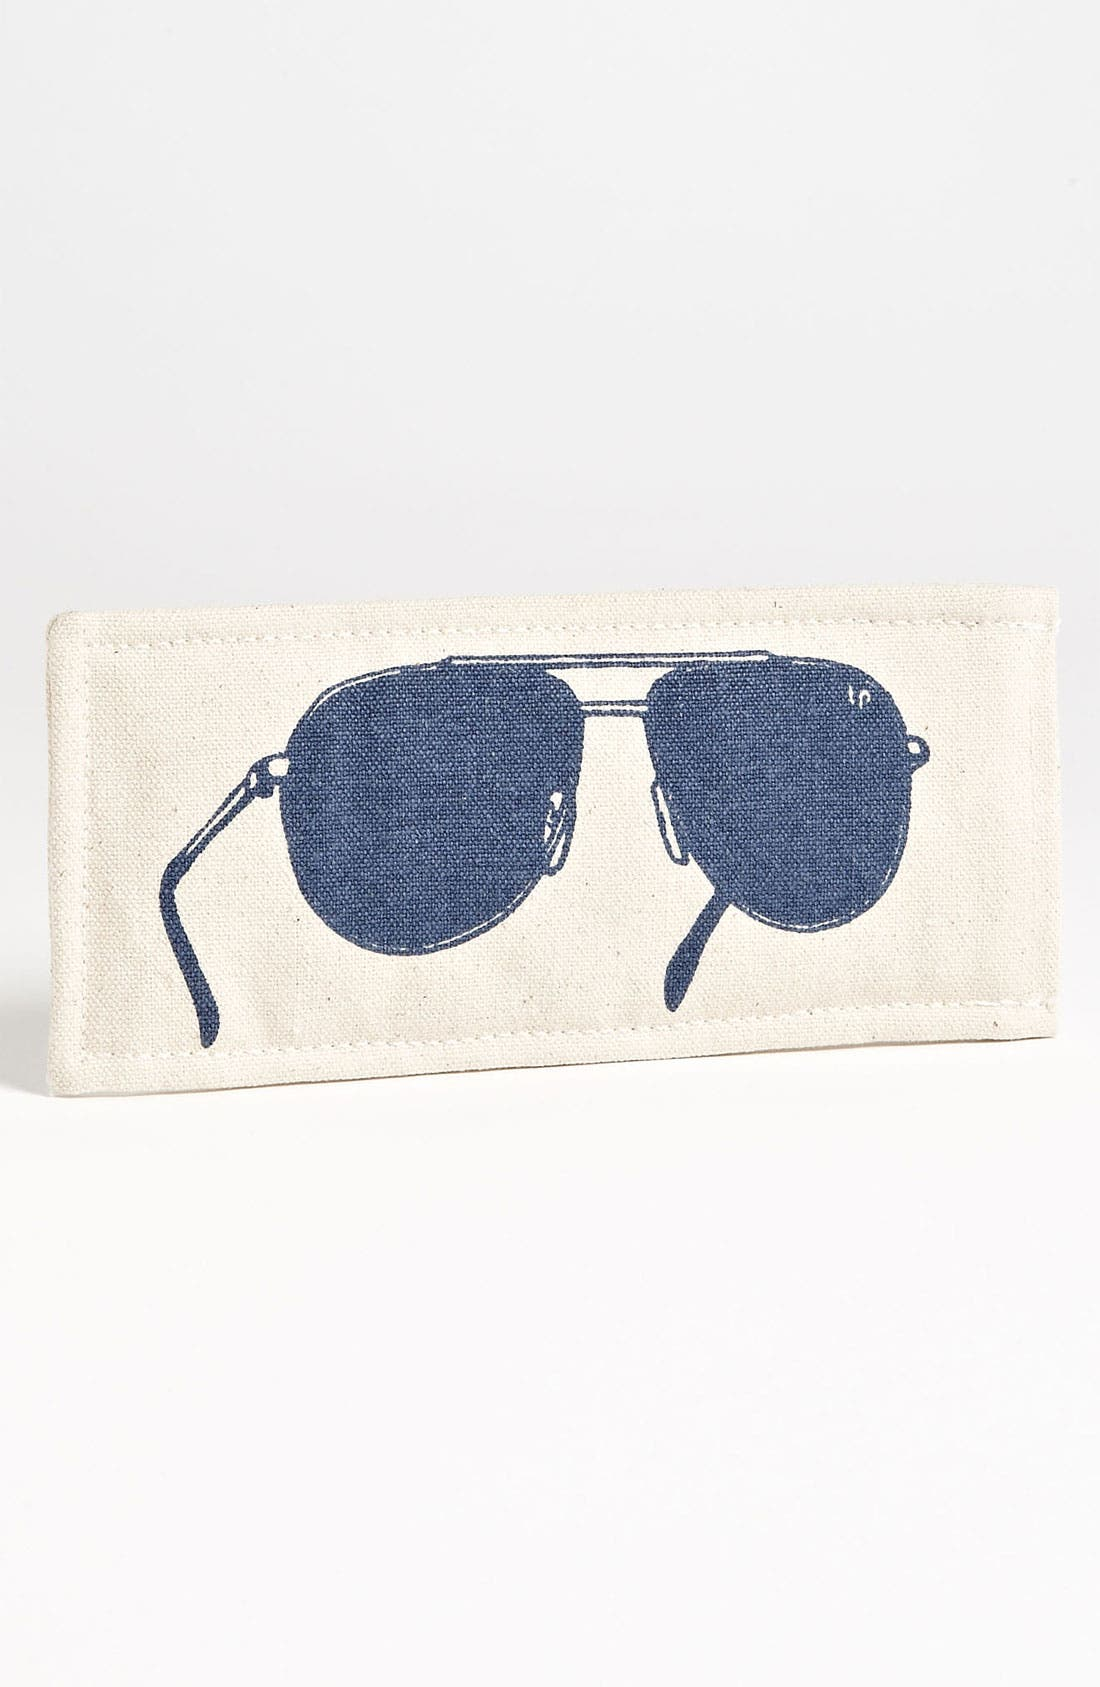 Main Image - Thomas Paul 'Aviator' Sunglass Case